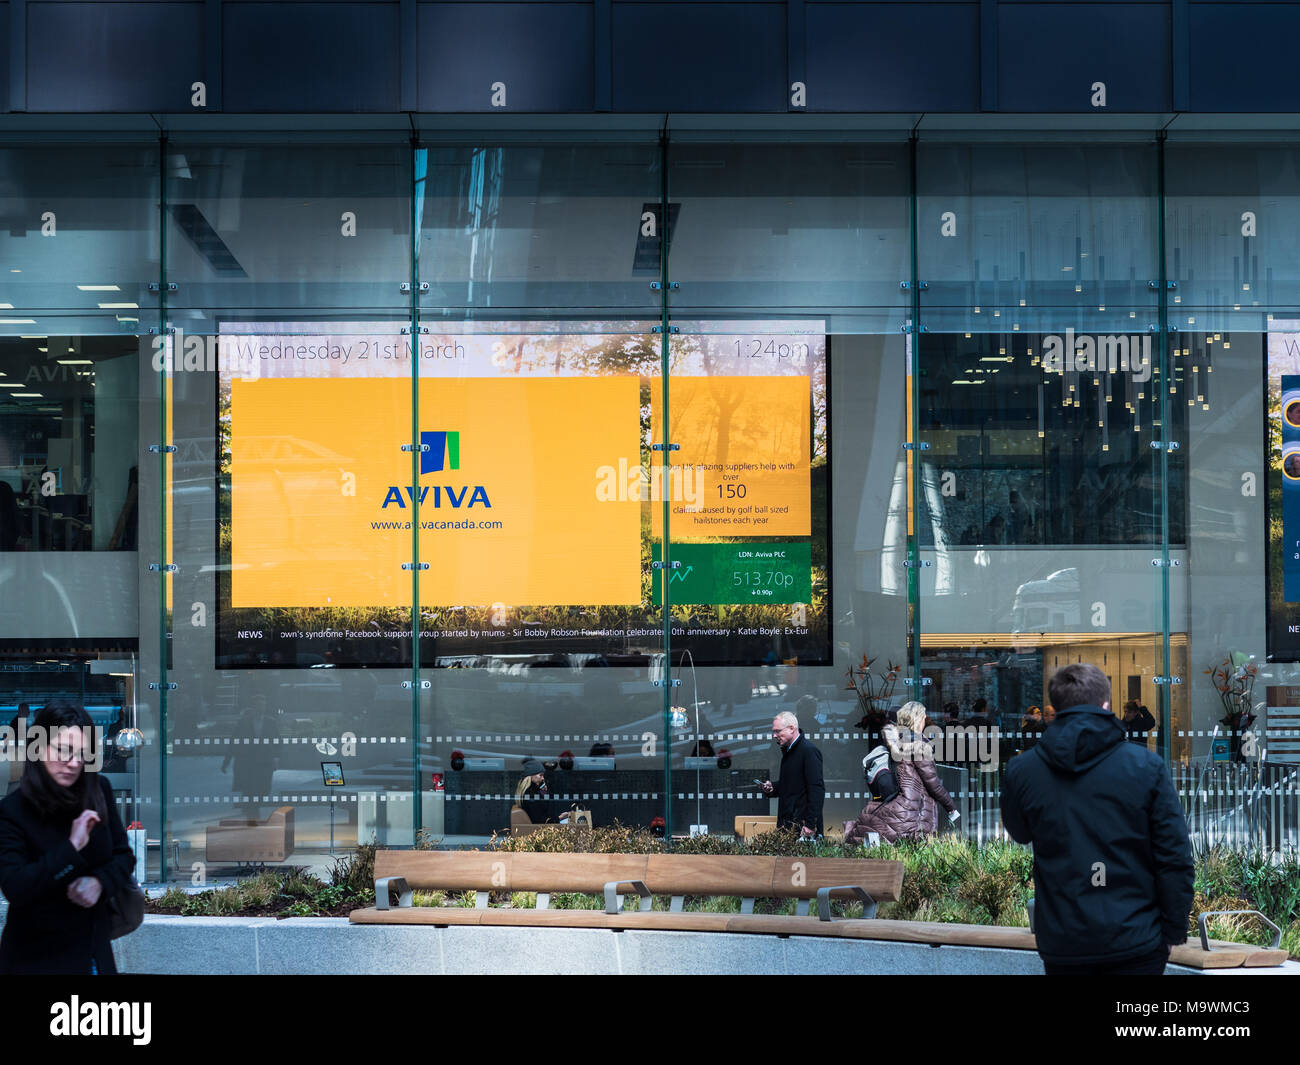 Aviva display in the foyer of the St Helen's building, formerly the Aviva Tower, in St Mary Axe in the City of London - Stock Image